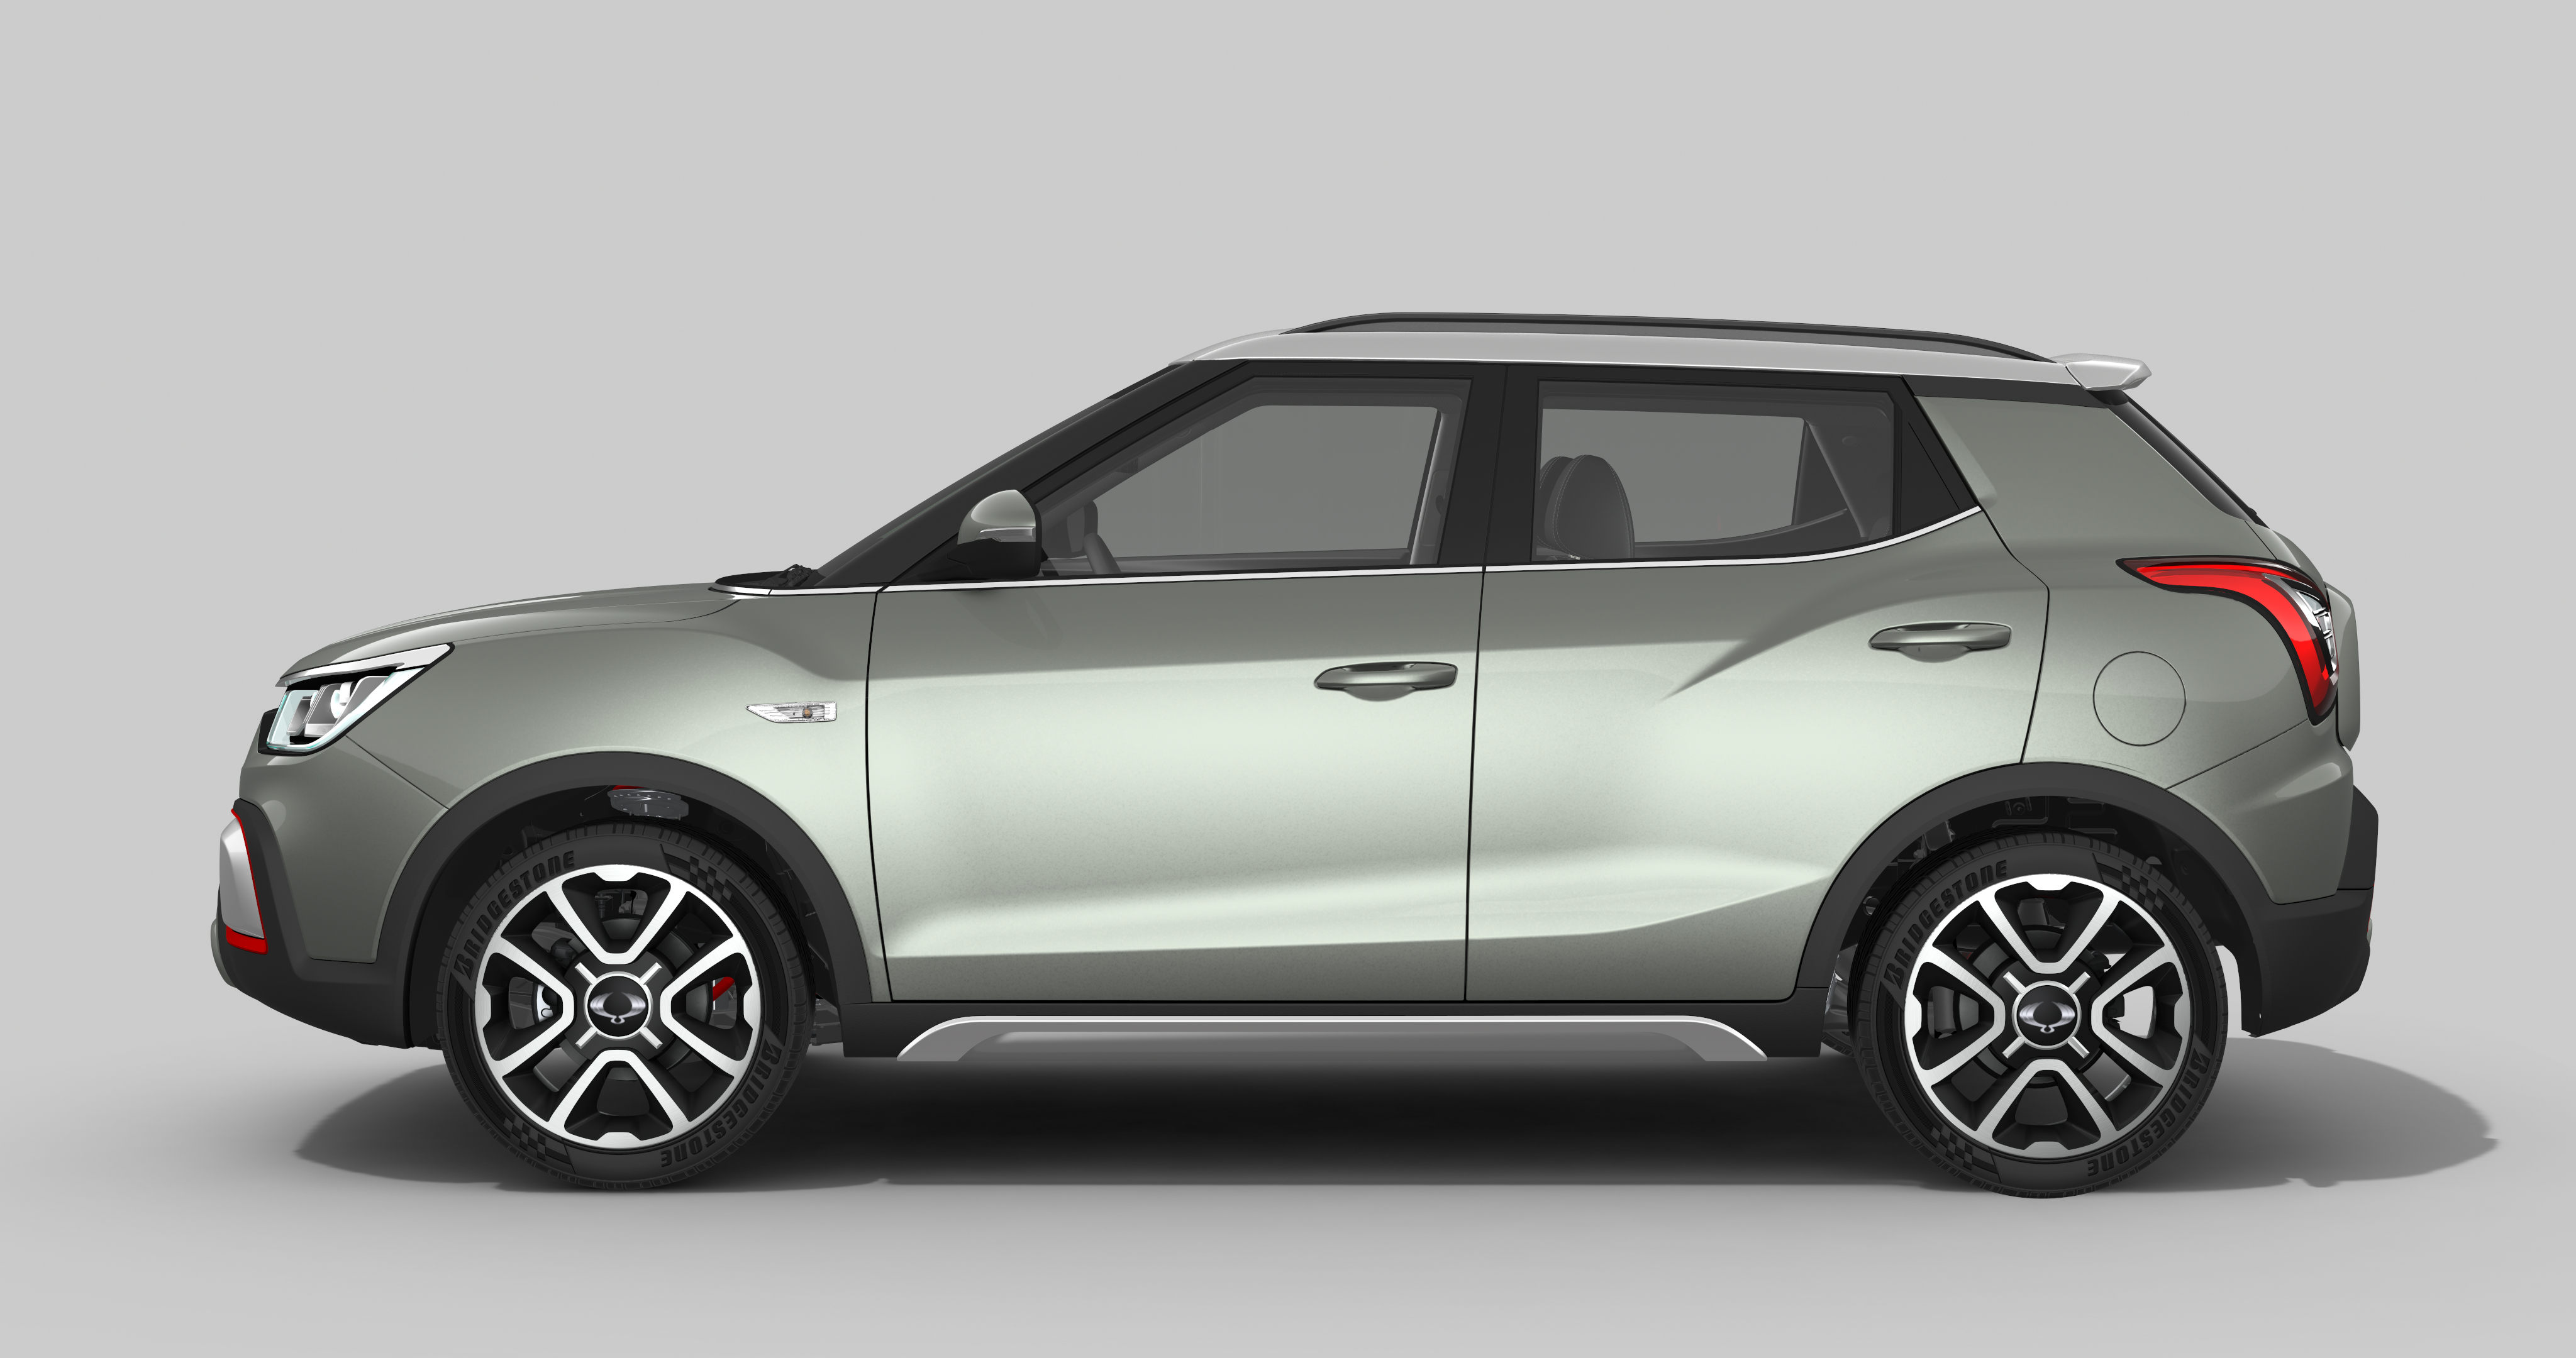 2019 SsangYong XIV 2 Concept photo - 6